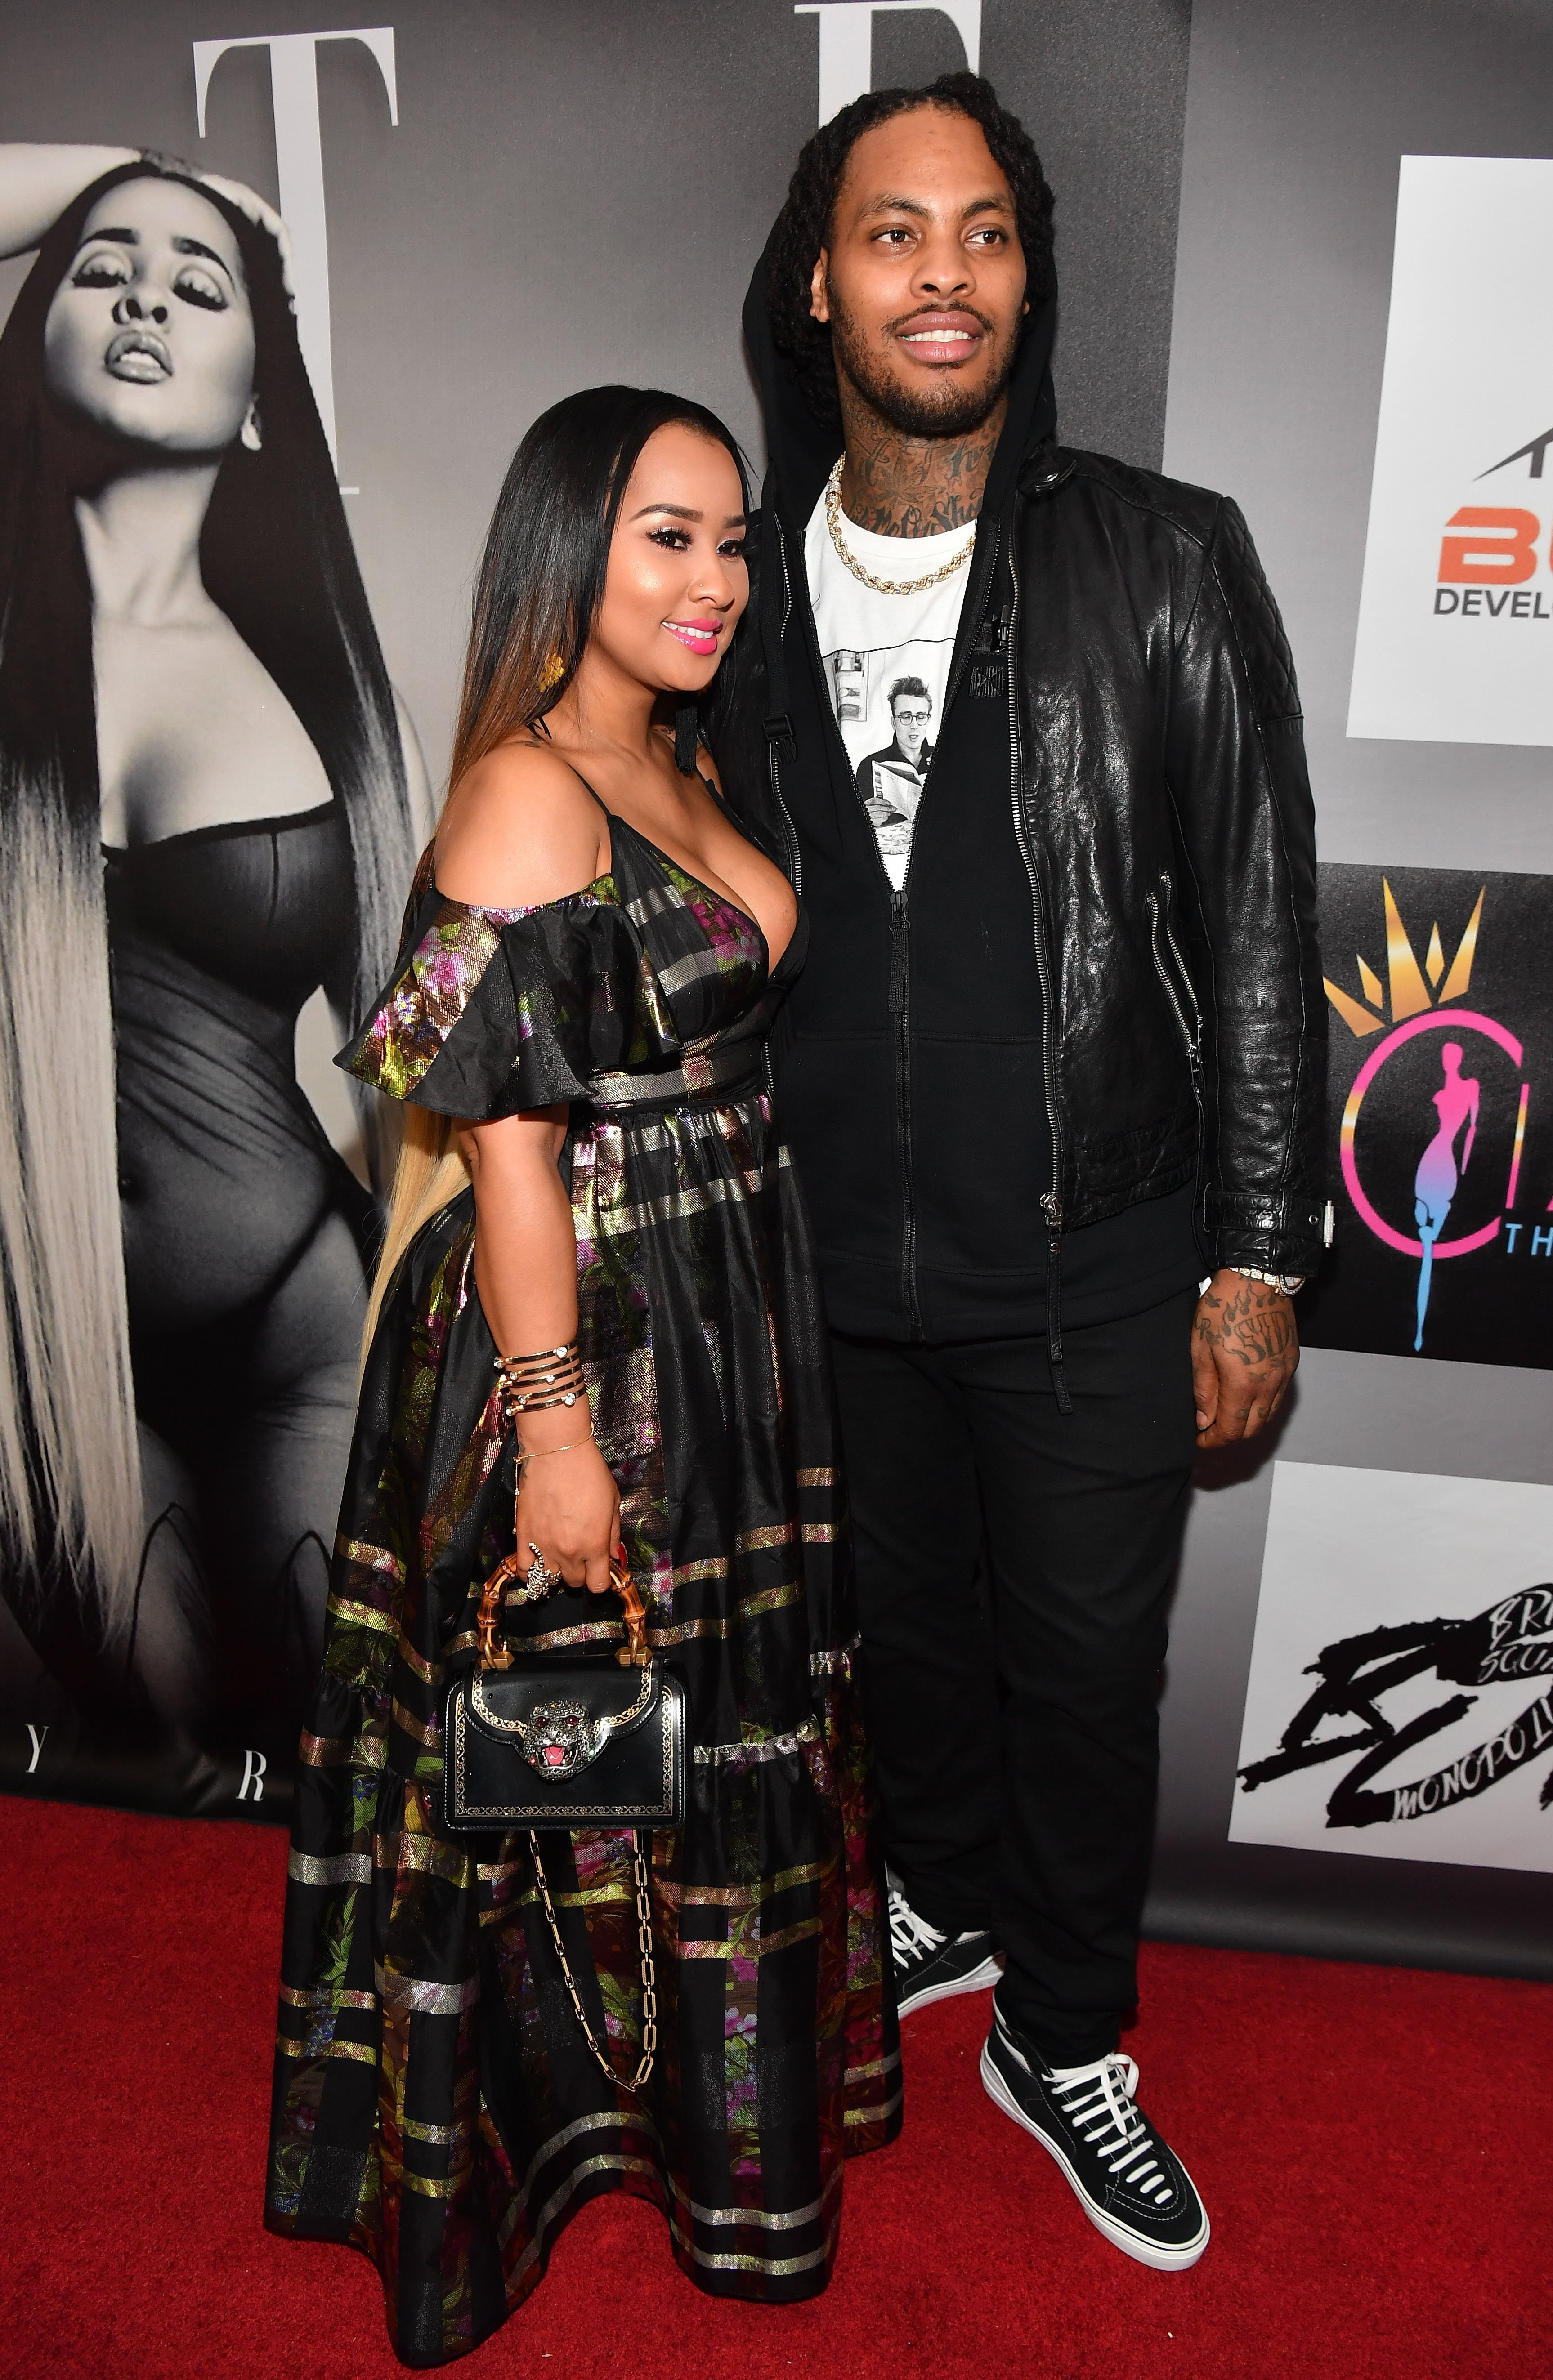 """Tammy Rivera and Waka Flocka at the release party of Tammy's """"Fate"""" EP in April 2018. 